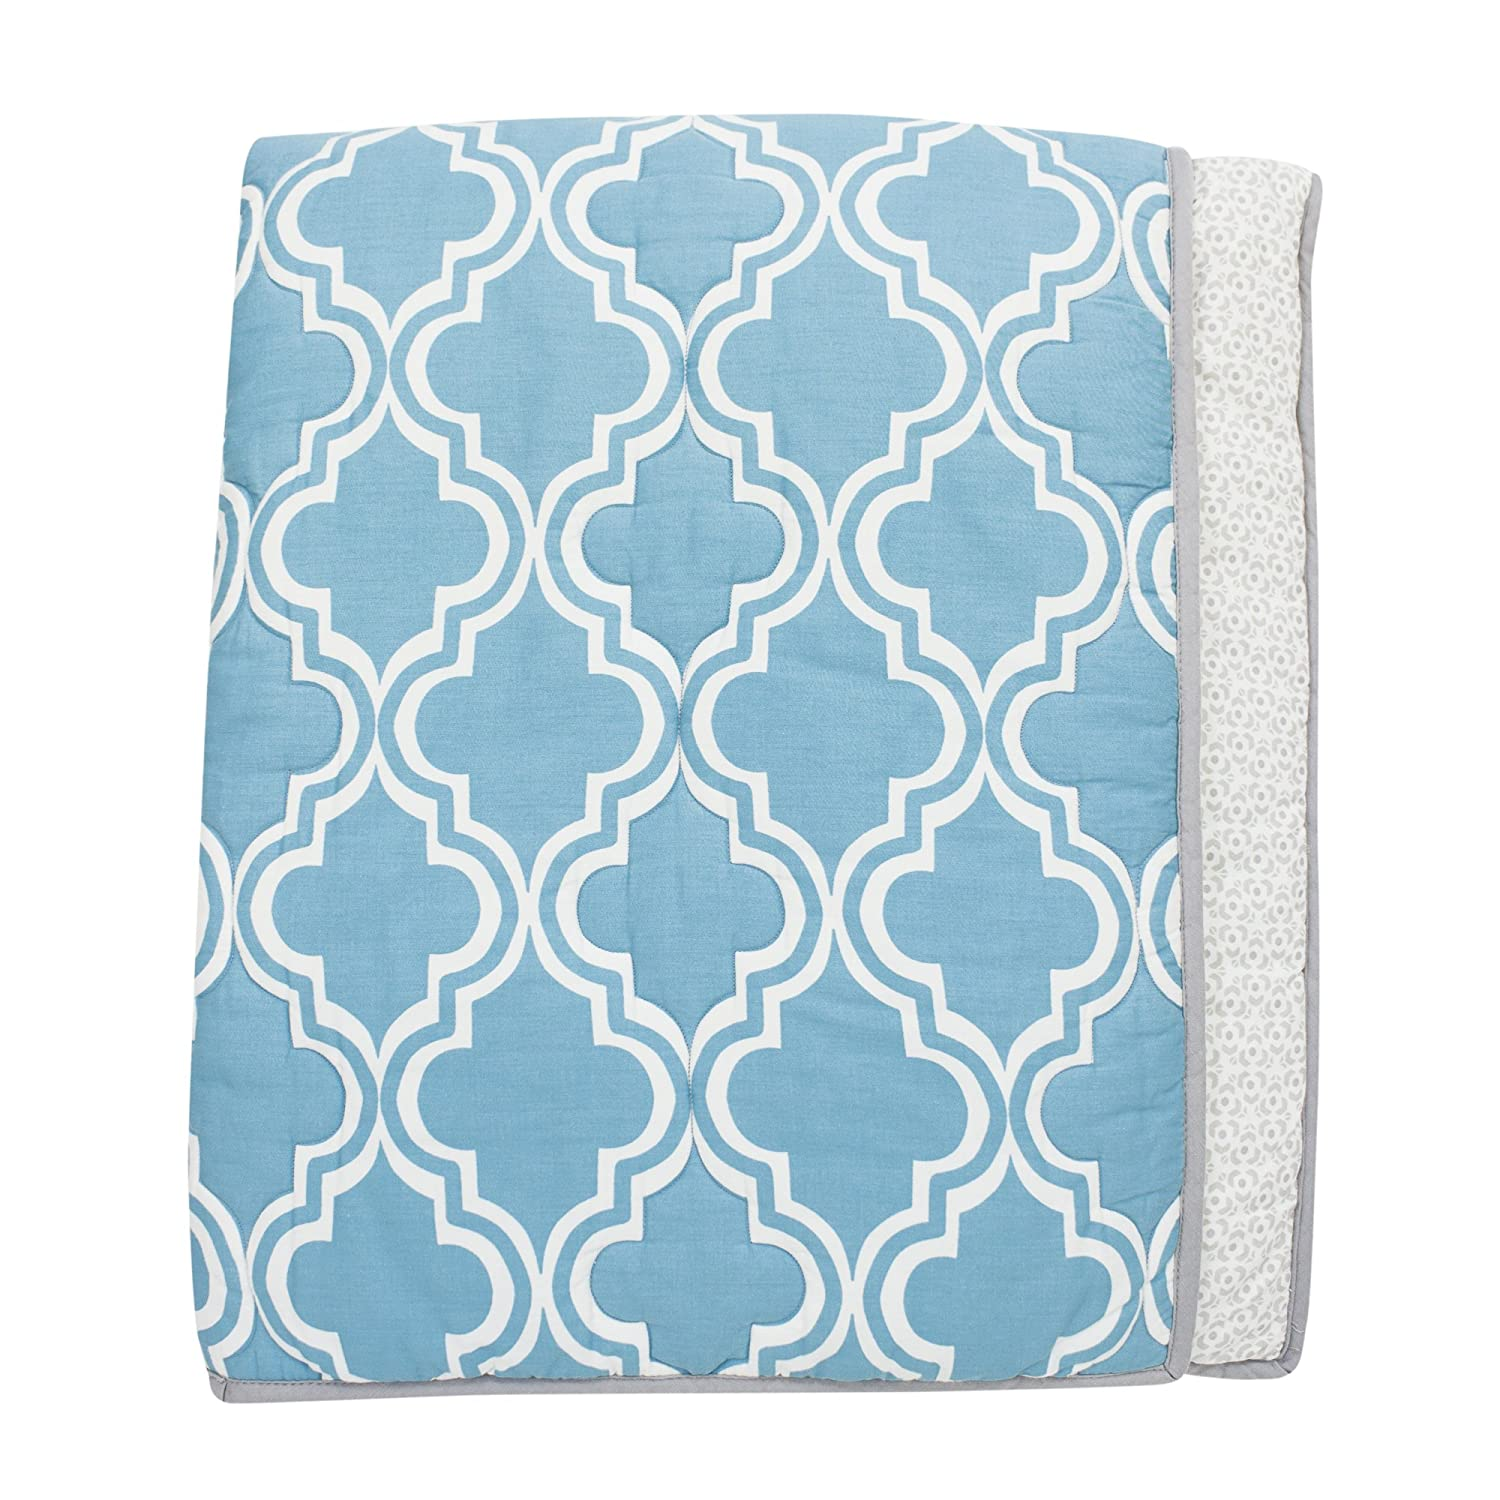 Limited price Lambs 35% OFF Ivy Ryan Reversible Collection Coverlet